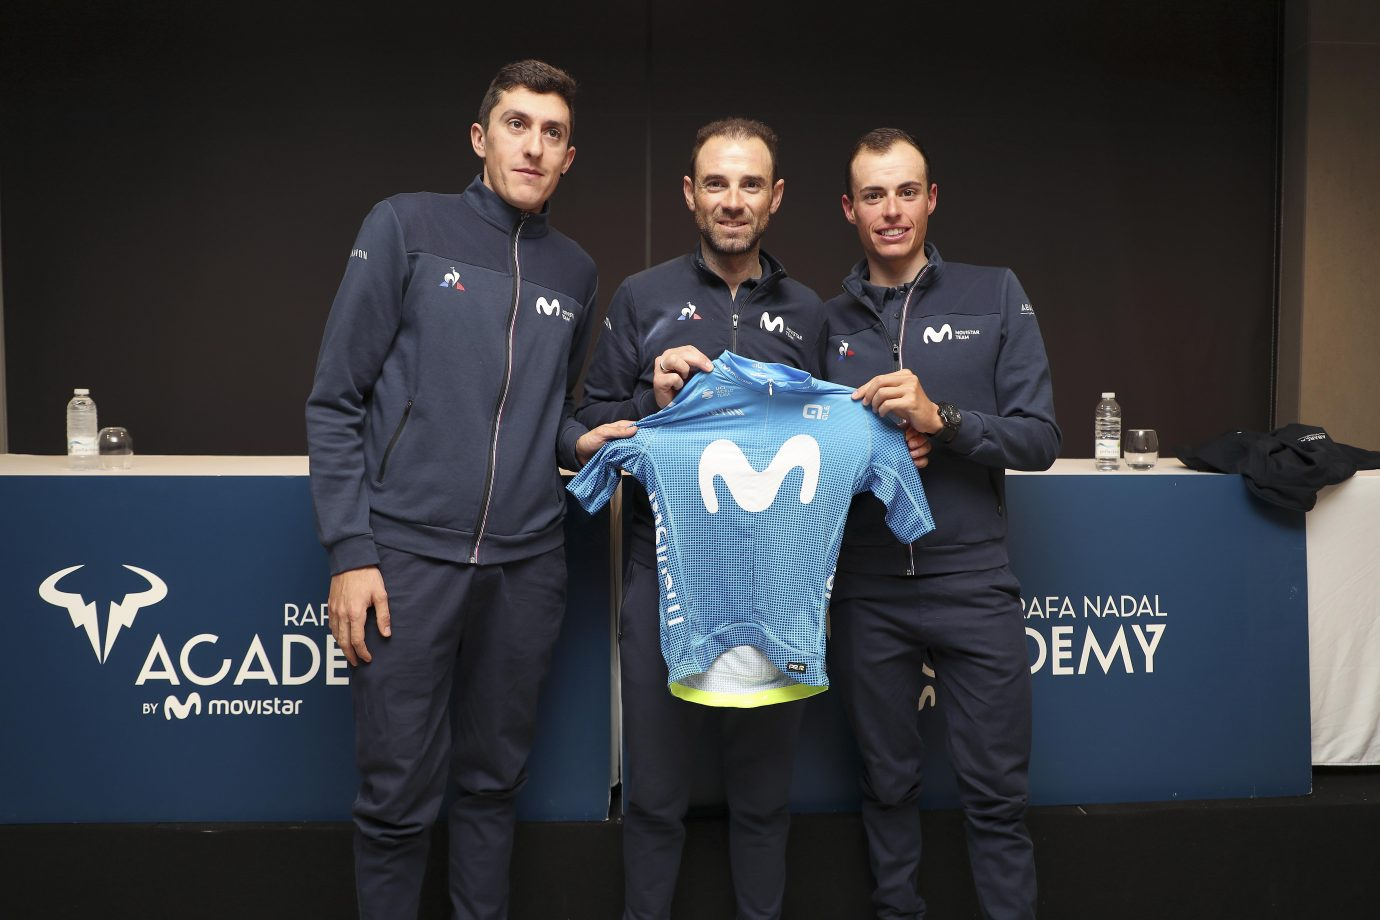 Imagen de la noticia 'Valverde, Soler, Mas outline preliminary 2020 racing schedules'